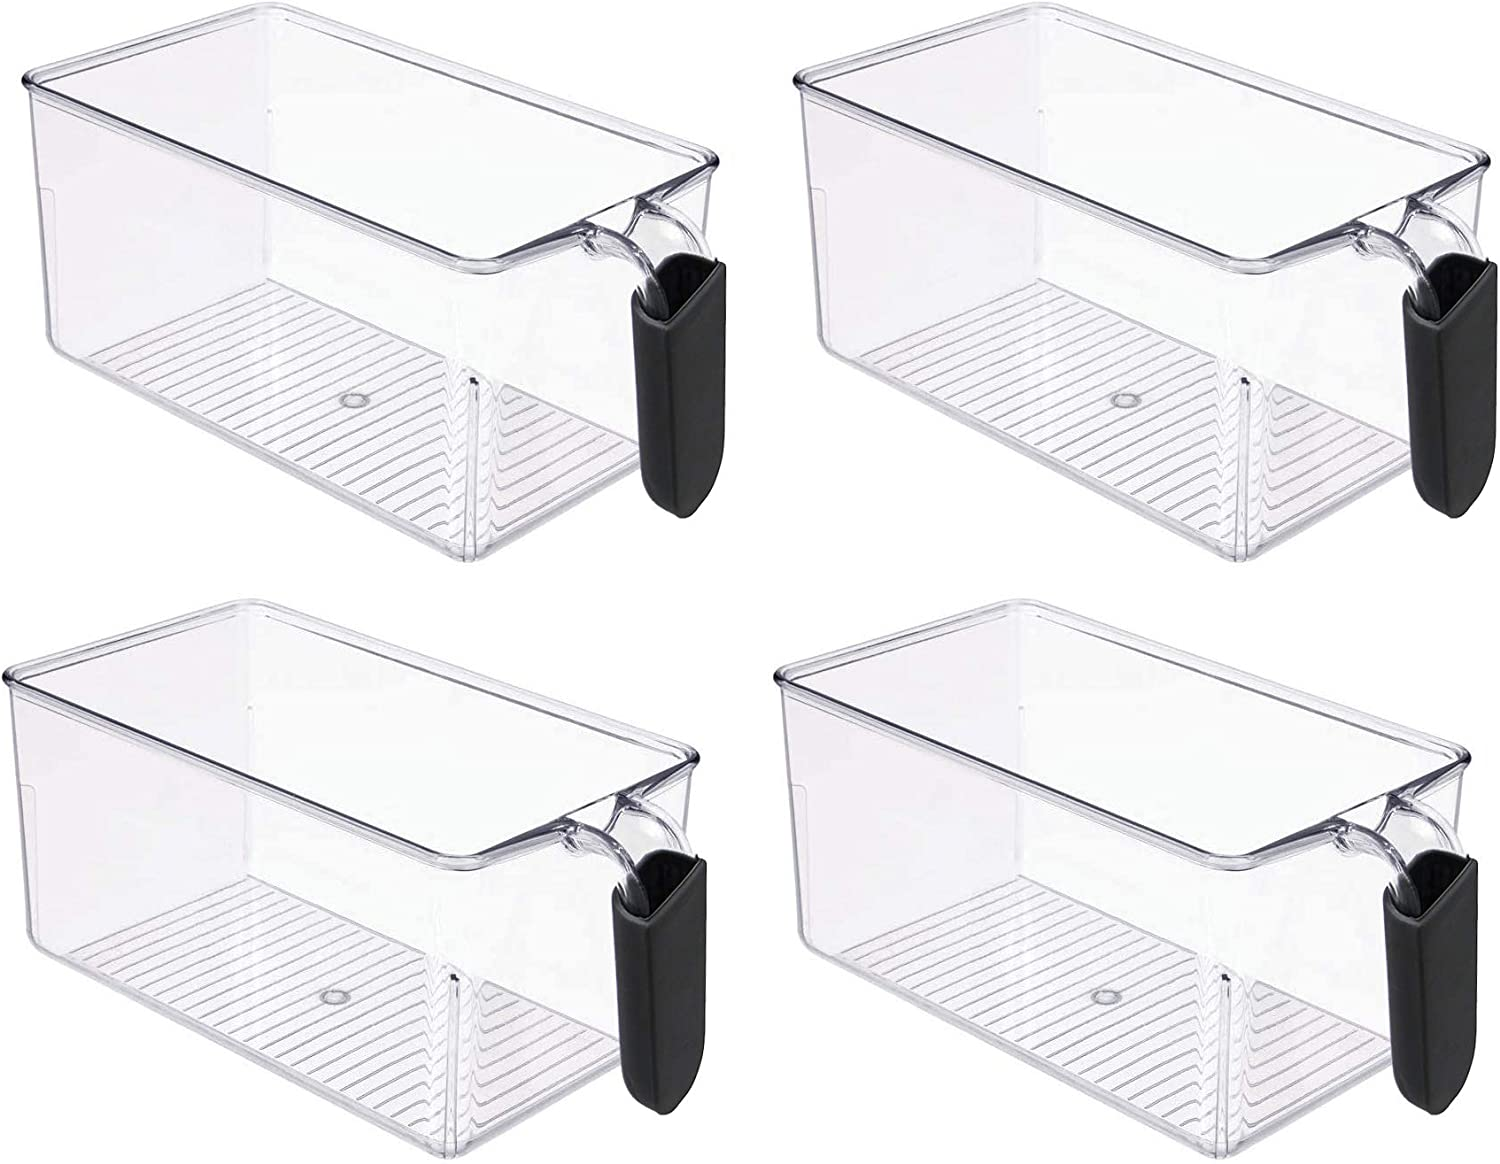 Clear food storage bins with handle, refrigertor organizer containers, canister sets for kitchen counter, BPA Free